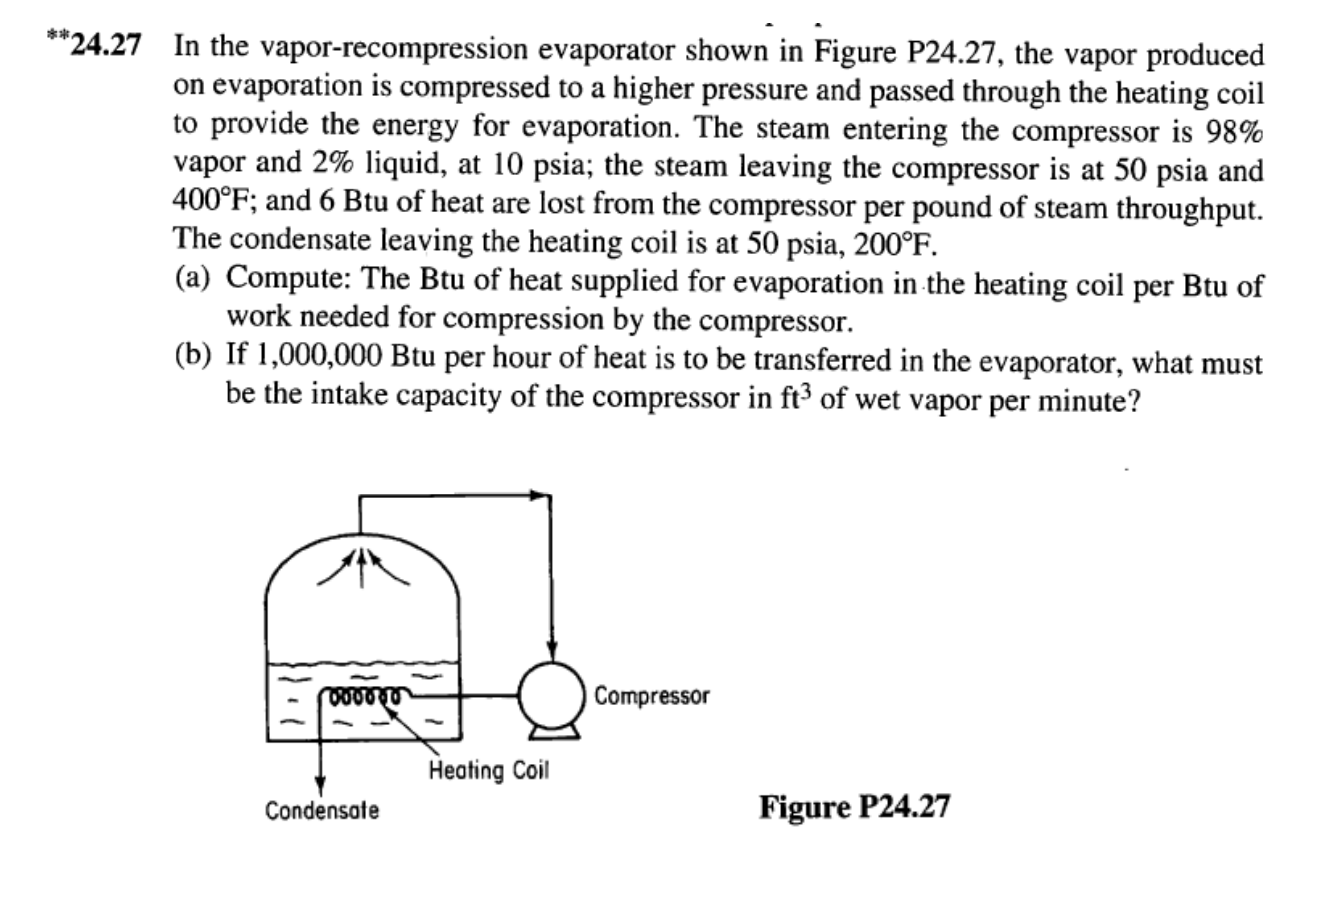 "*""24.27 In the vapor-recompression evaporator shown in Figure P24.27, the vapor produced on evaporation is compressed to a higher pressure and passed through the heating coil to provide the energy for evaporation. The steam entering the compressor is 98% vapor and 2% liquid, at 10 psia; the steam leaving the compressor is at 50 psia and 400°F; and 6 Btu of heat are lost from the compressor per pound of steam throughput The condensate leaving the heating coil is at 50 psia, 200°F (a) Compute: The Btu of heat supplied for evaporation in the heating coil per Btu of work needed for compression by the compressor. (b) If 1,000,000 Btu per hour of heat is to be transferred in the evaporator, what must be the intake capacity of the compressor in ft3 of wet vapor per minute? Compressor O00040 Heating Coil Figure P24.27 Condensate"